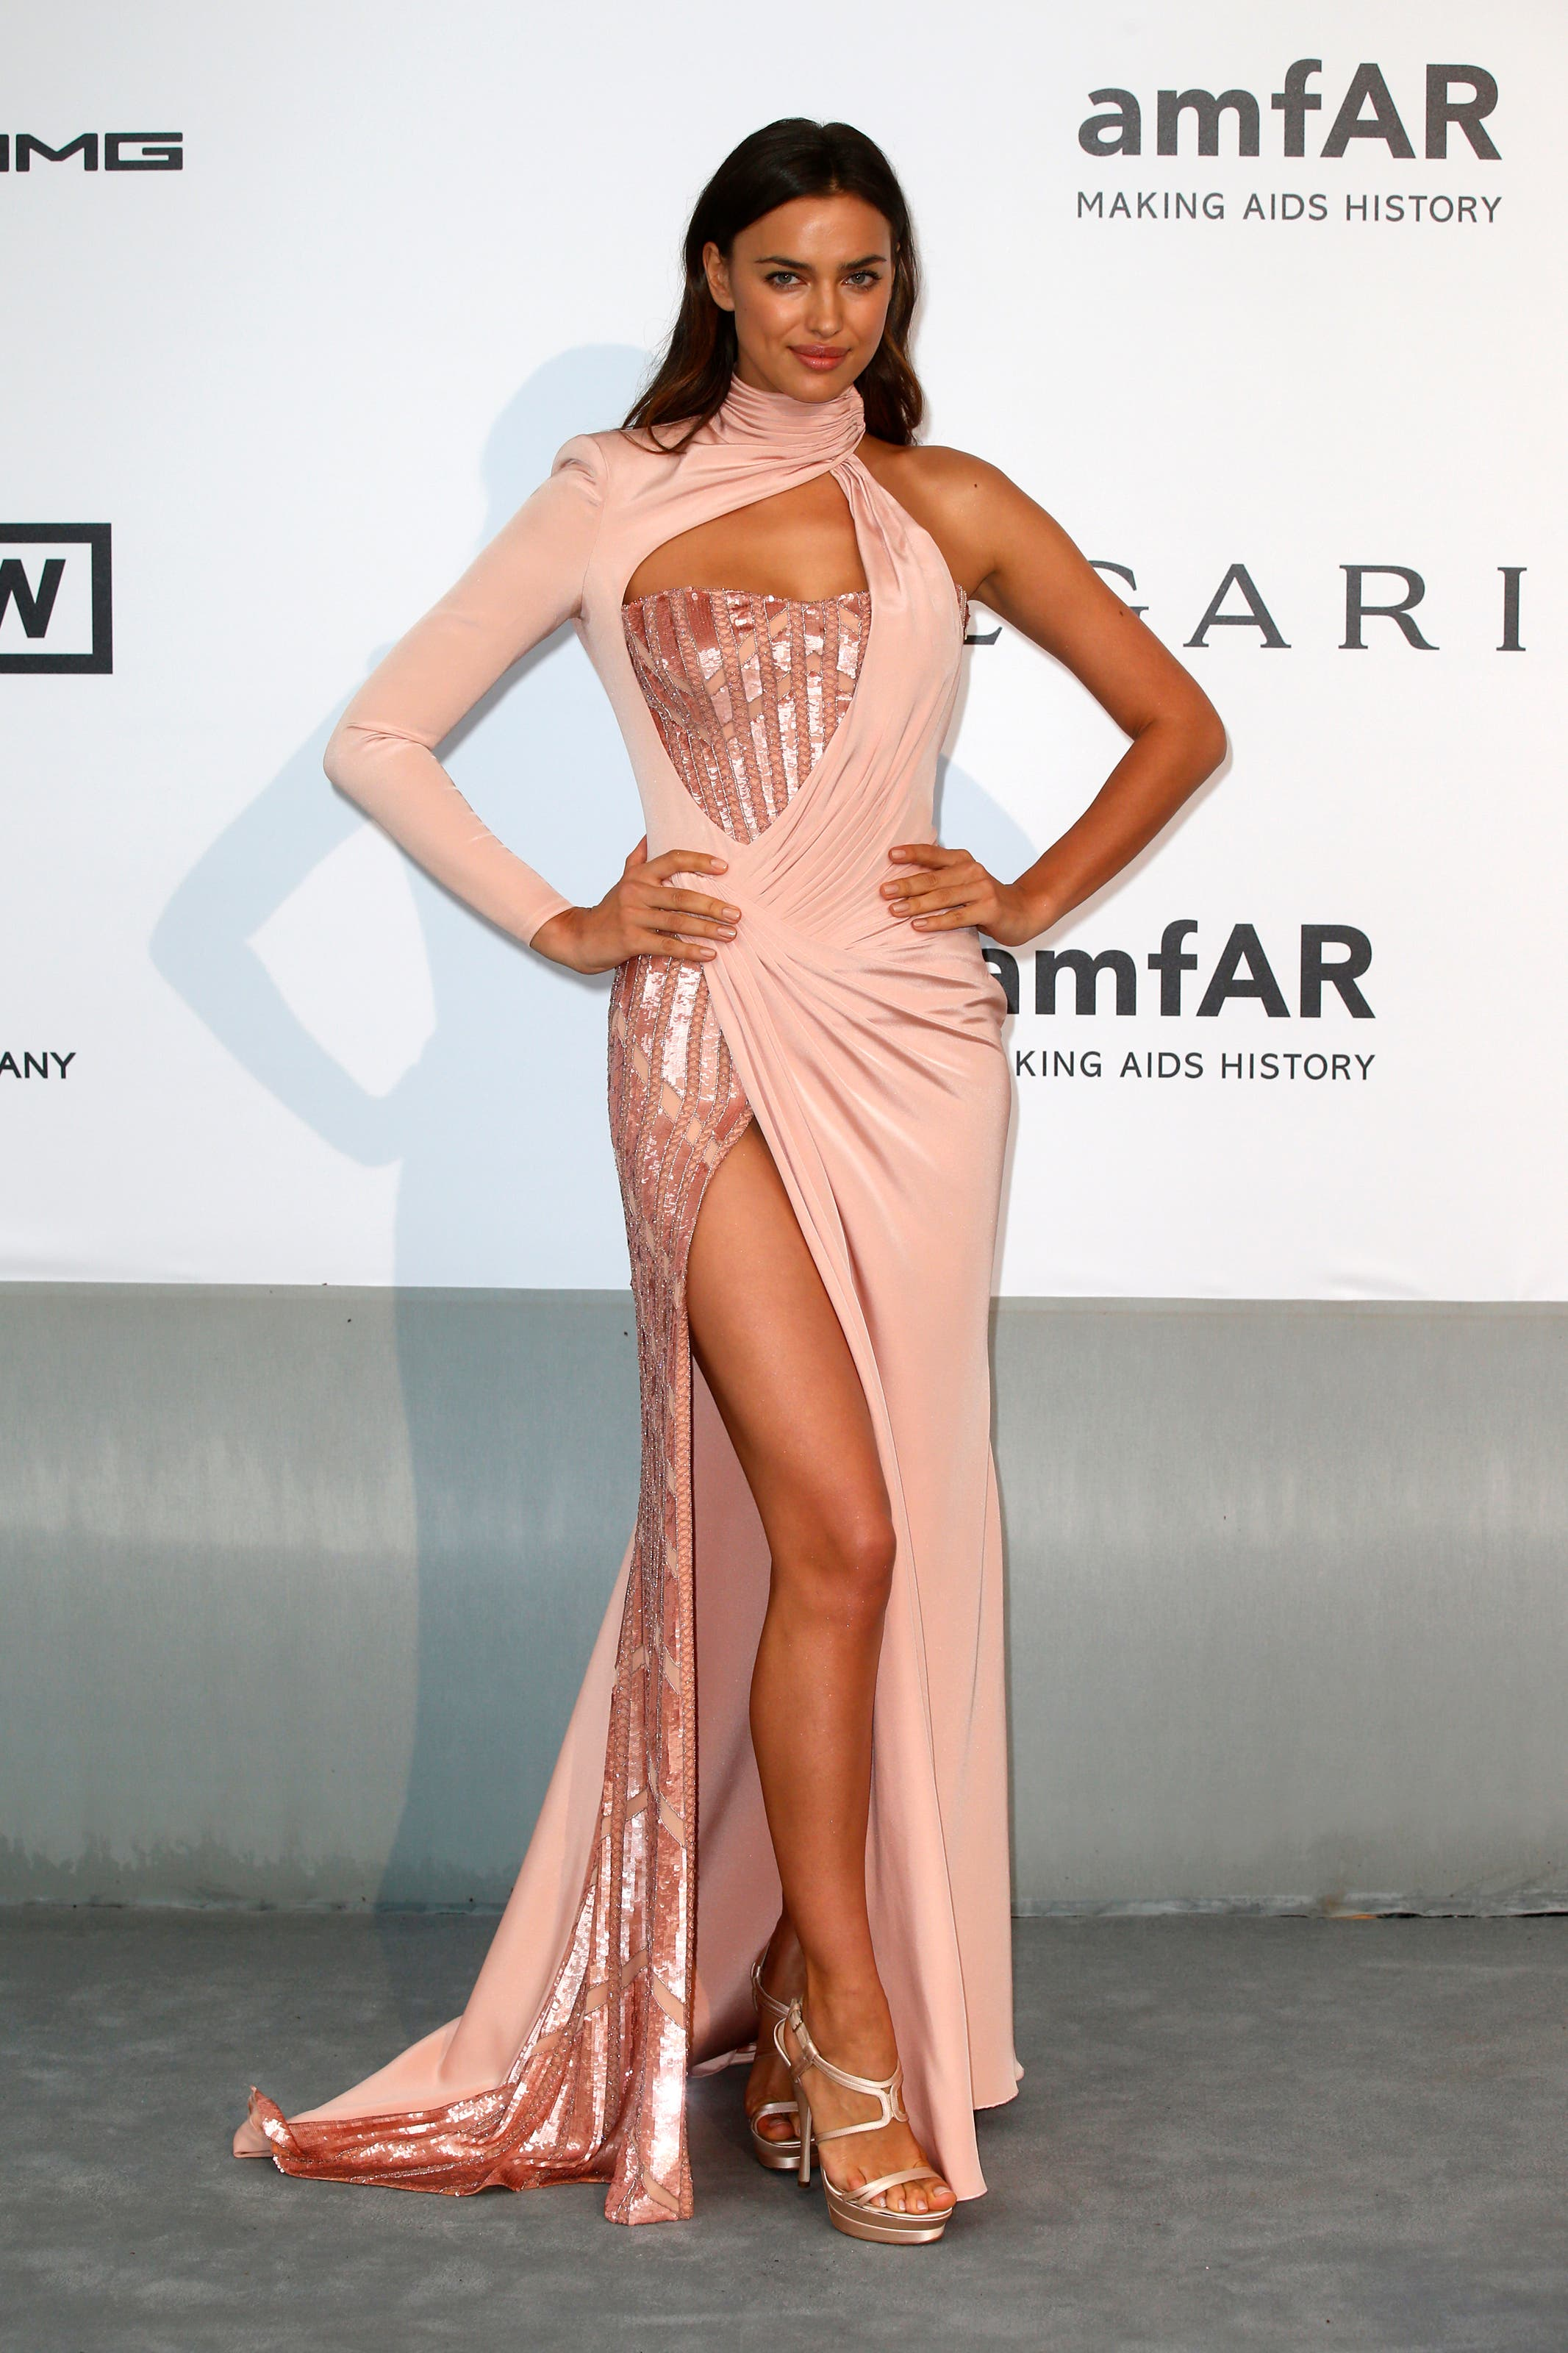 Model Irina Shayk arrives for amfAR's Cinema Against AIDS 2014 event in Antibes during the 67th Cannes Film Festival May 22, 2014. (Reuters)